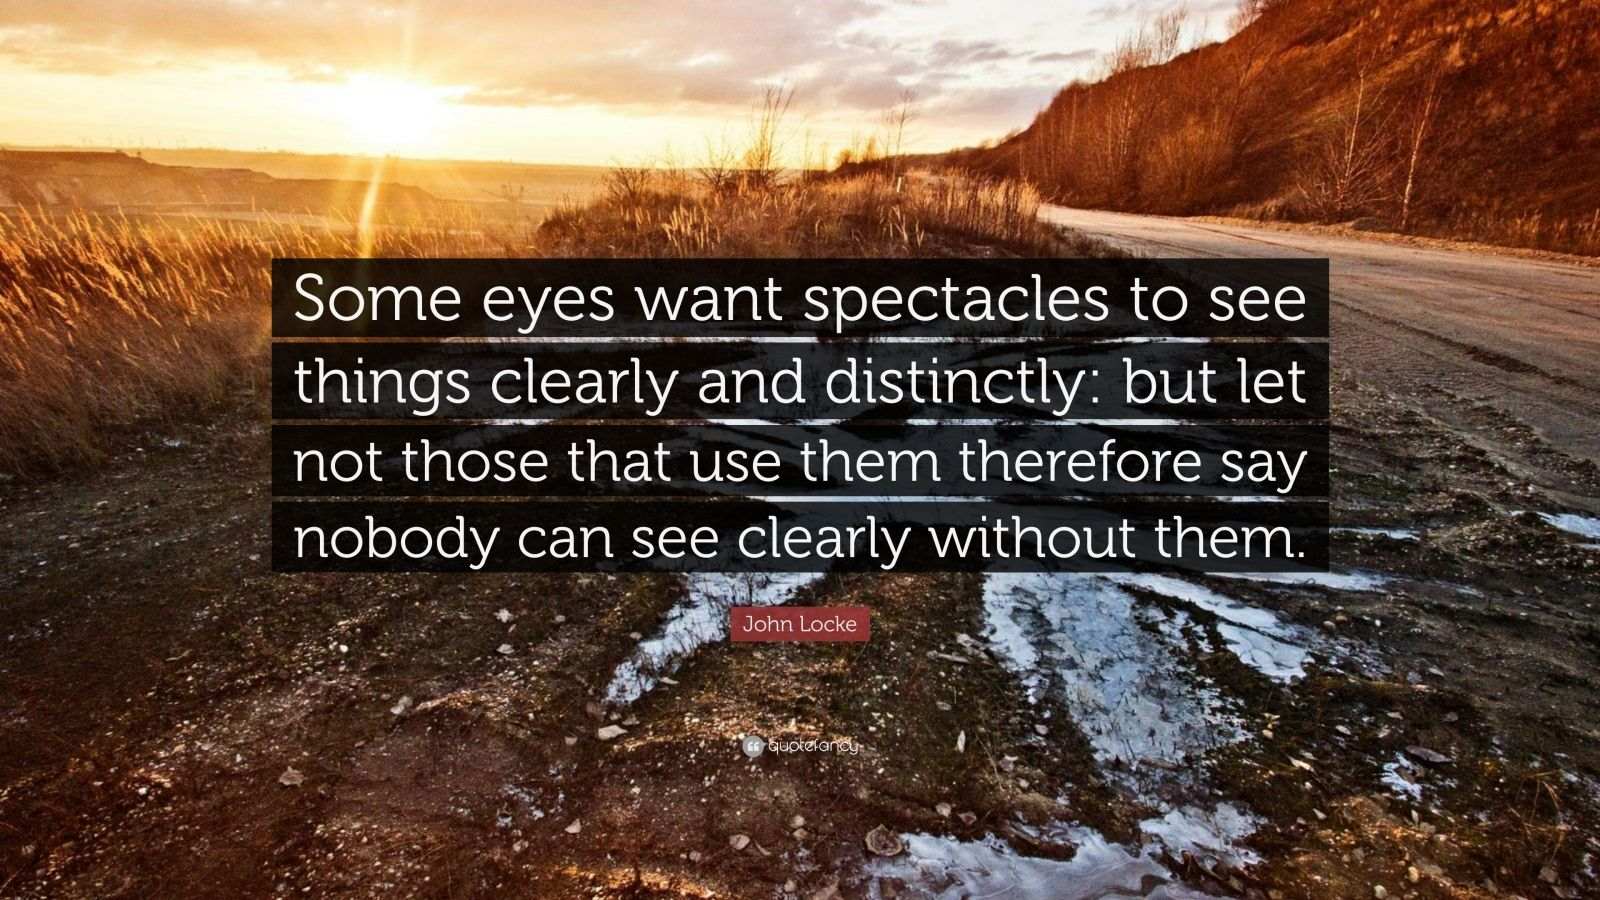 """John Locke Quote: """"Some eyes want spectacles to see things clearly and distinctly: but let not those that use them therefore say nobody can see clearly without them."""""""